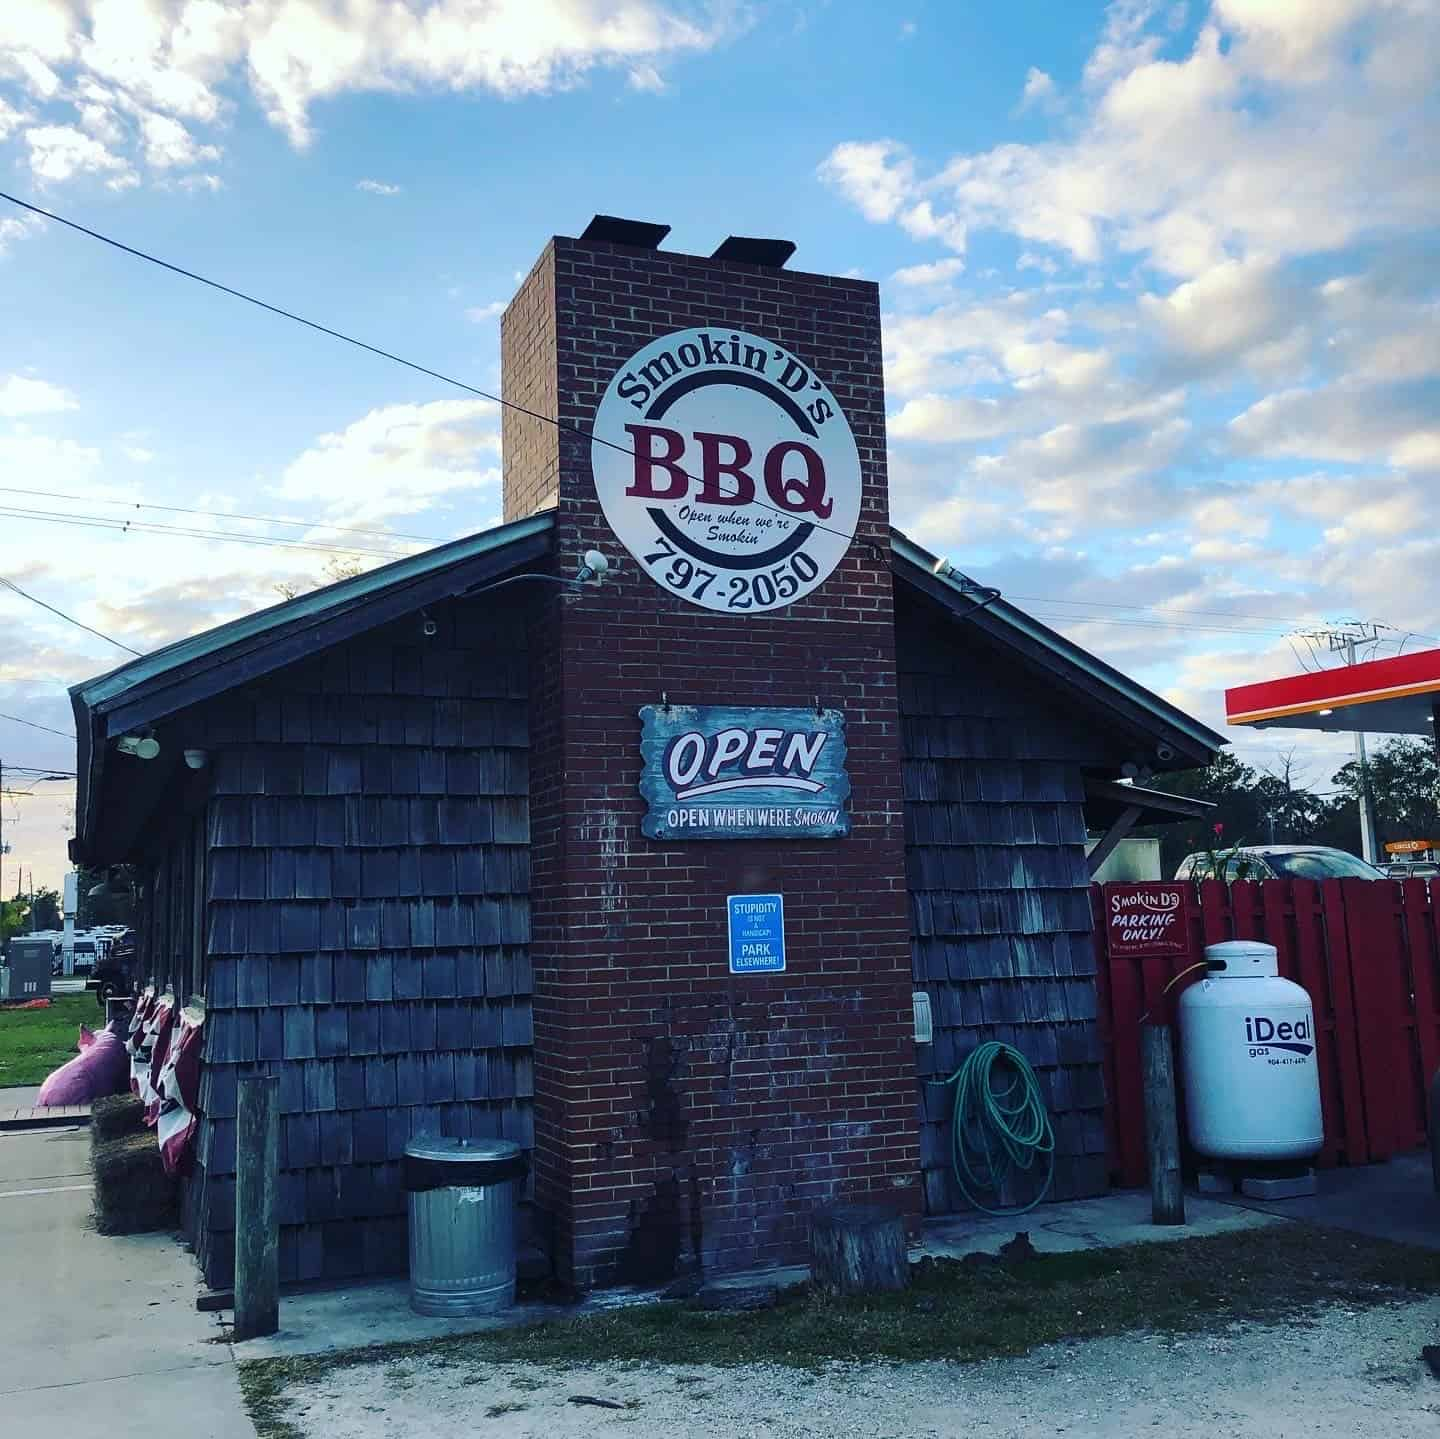 Smokin' D's BBQ is one of the best barbecue house in Florida! Here's the photograph of the building where the delicious BBQs are being served.